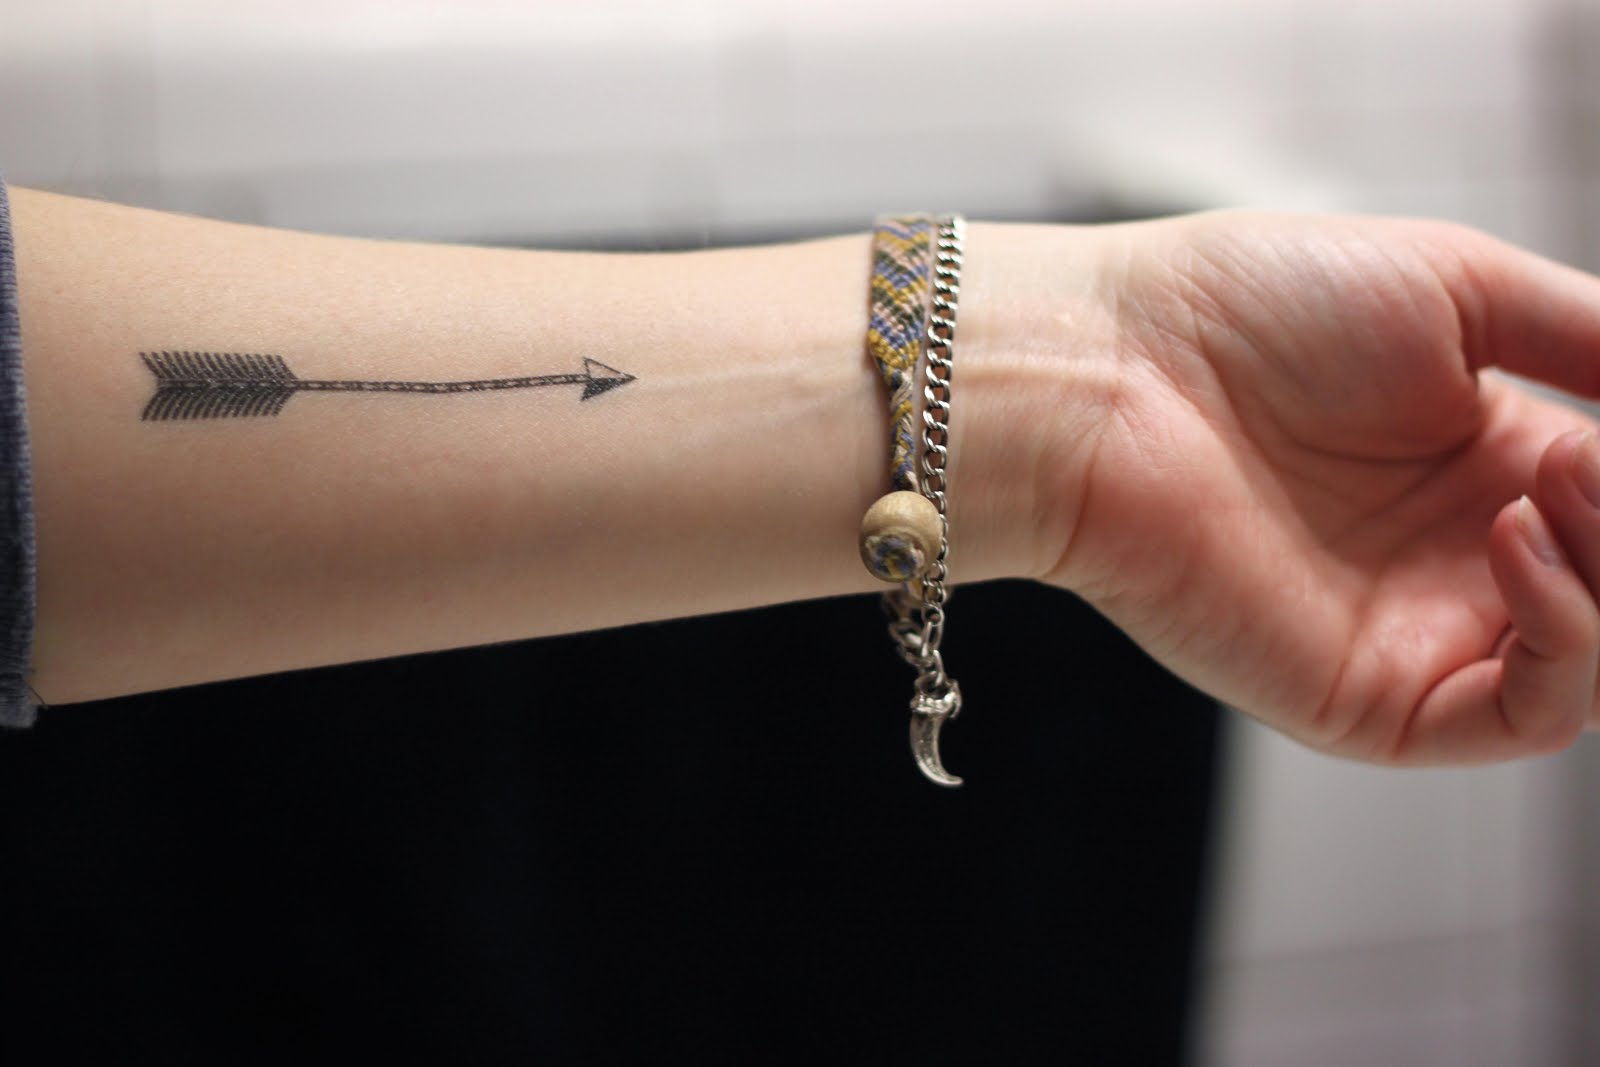 Really Amazing Arrow Tattoo Near Wrist